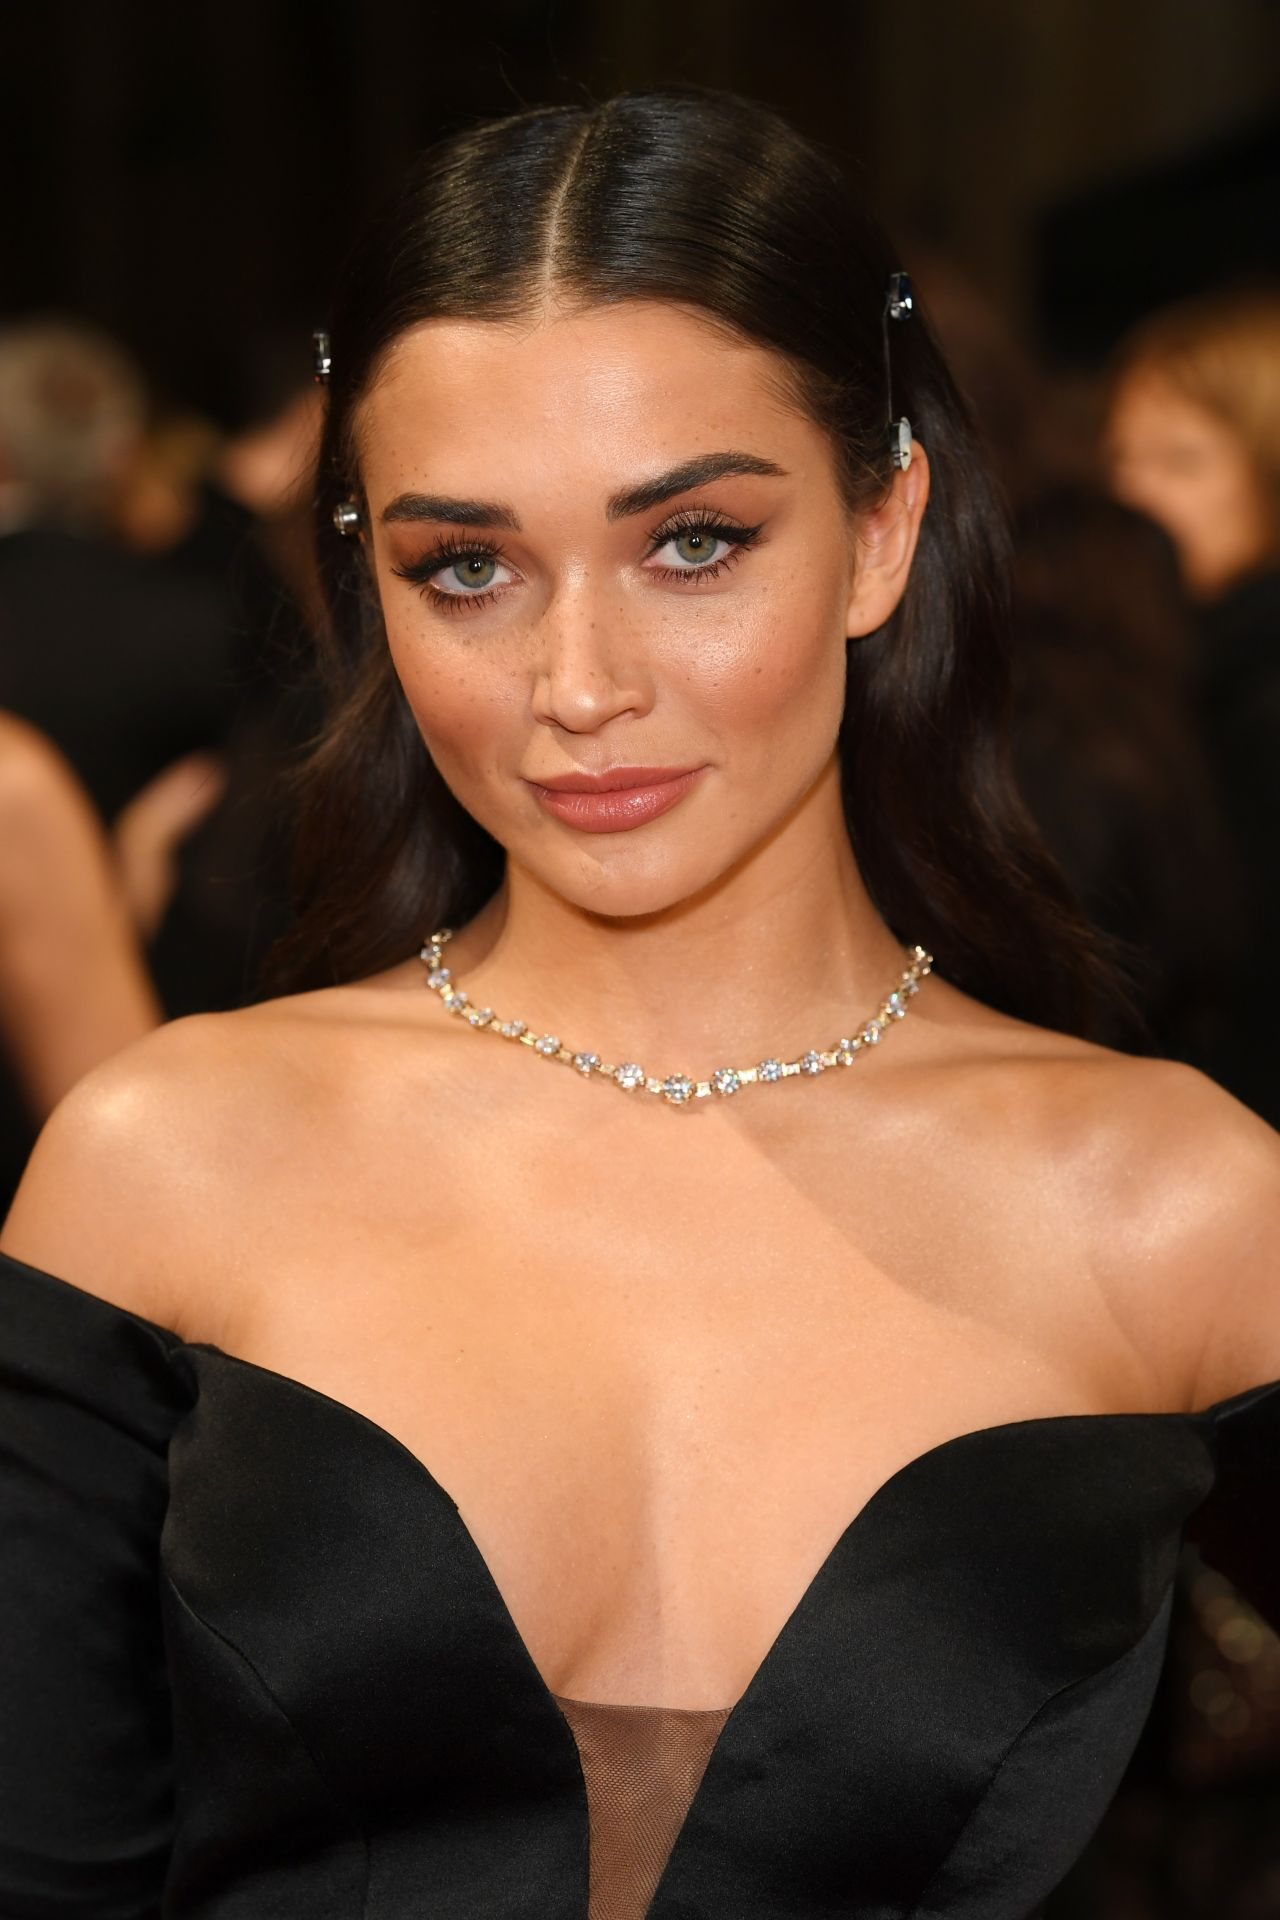 Sideboobs Pics Amy Jackson naked photo 2017